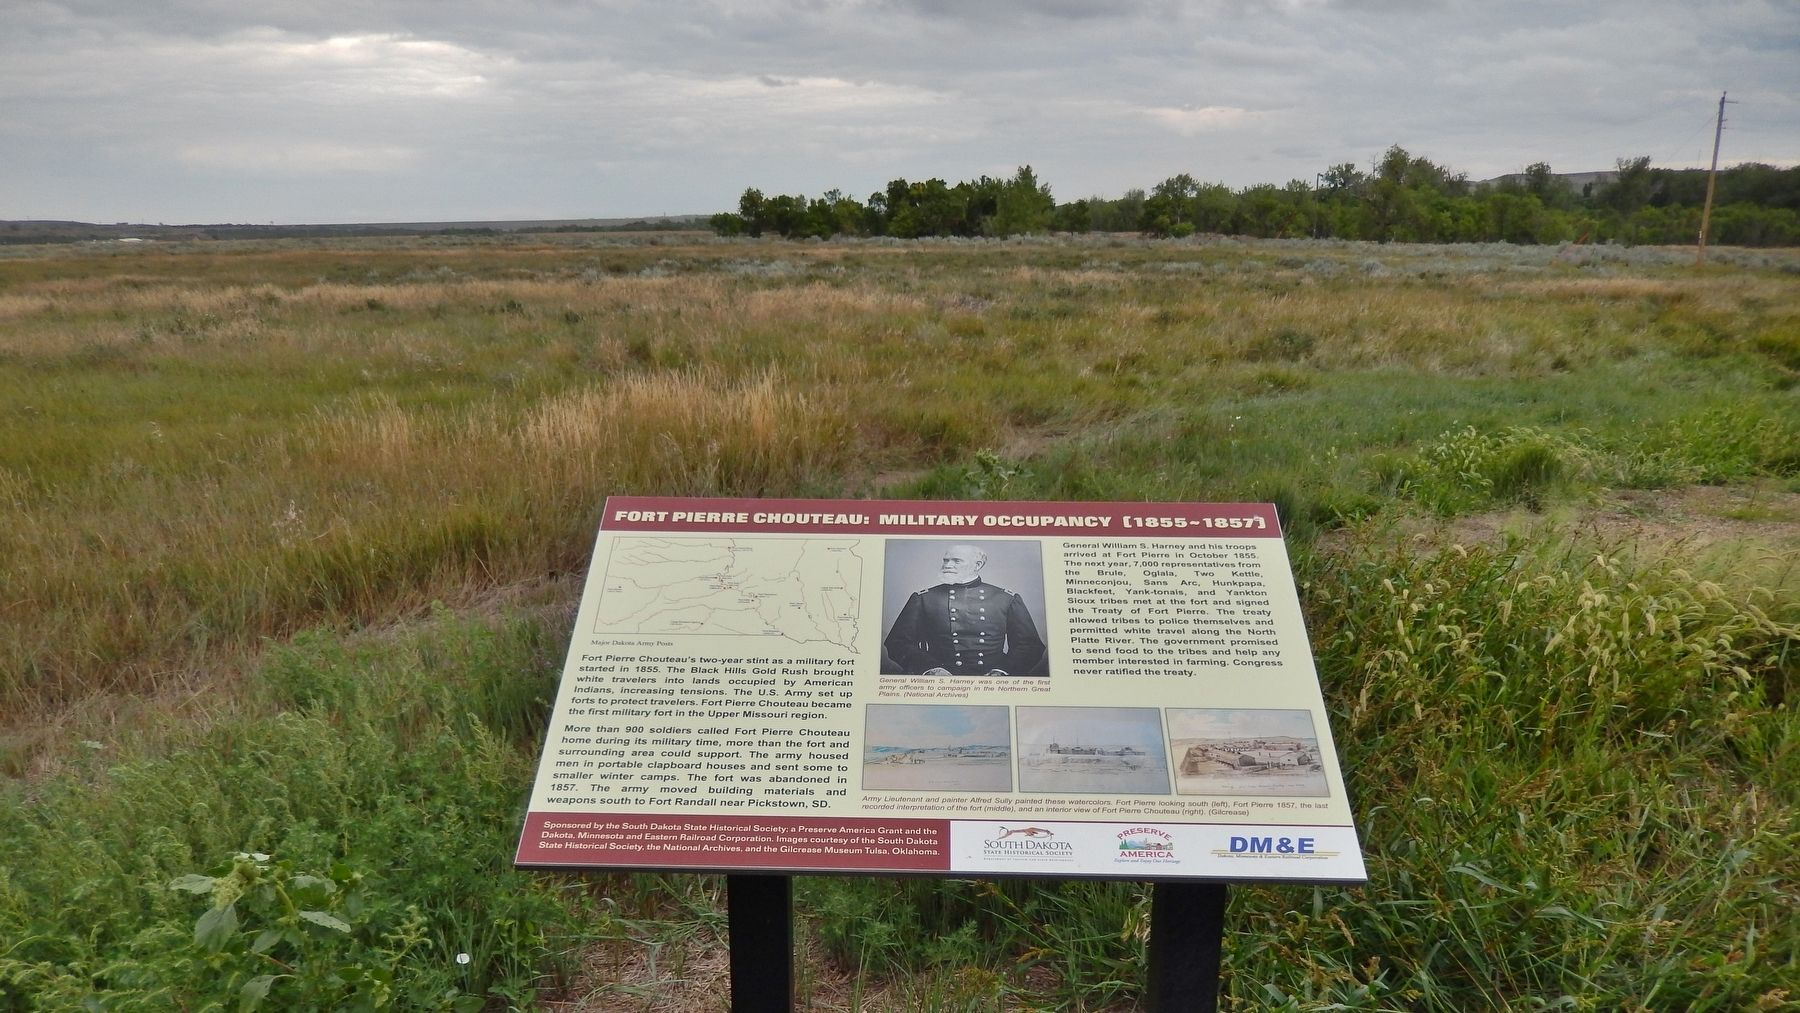 Fort Pierre Chouteau: Military Occupancy (1855-1857) Marker (<i>wide view</i>) image. Click for full size.